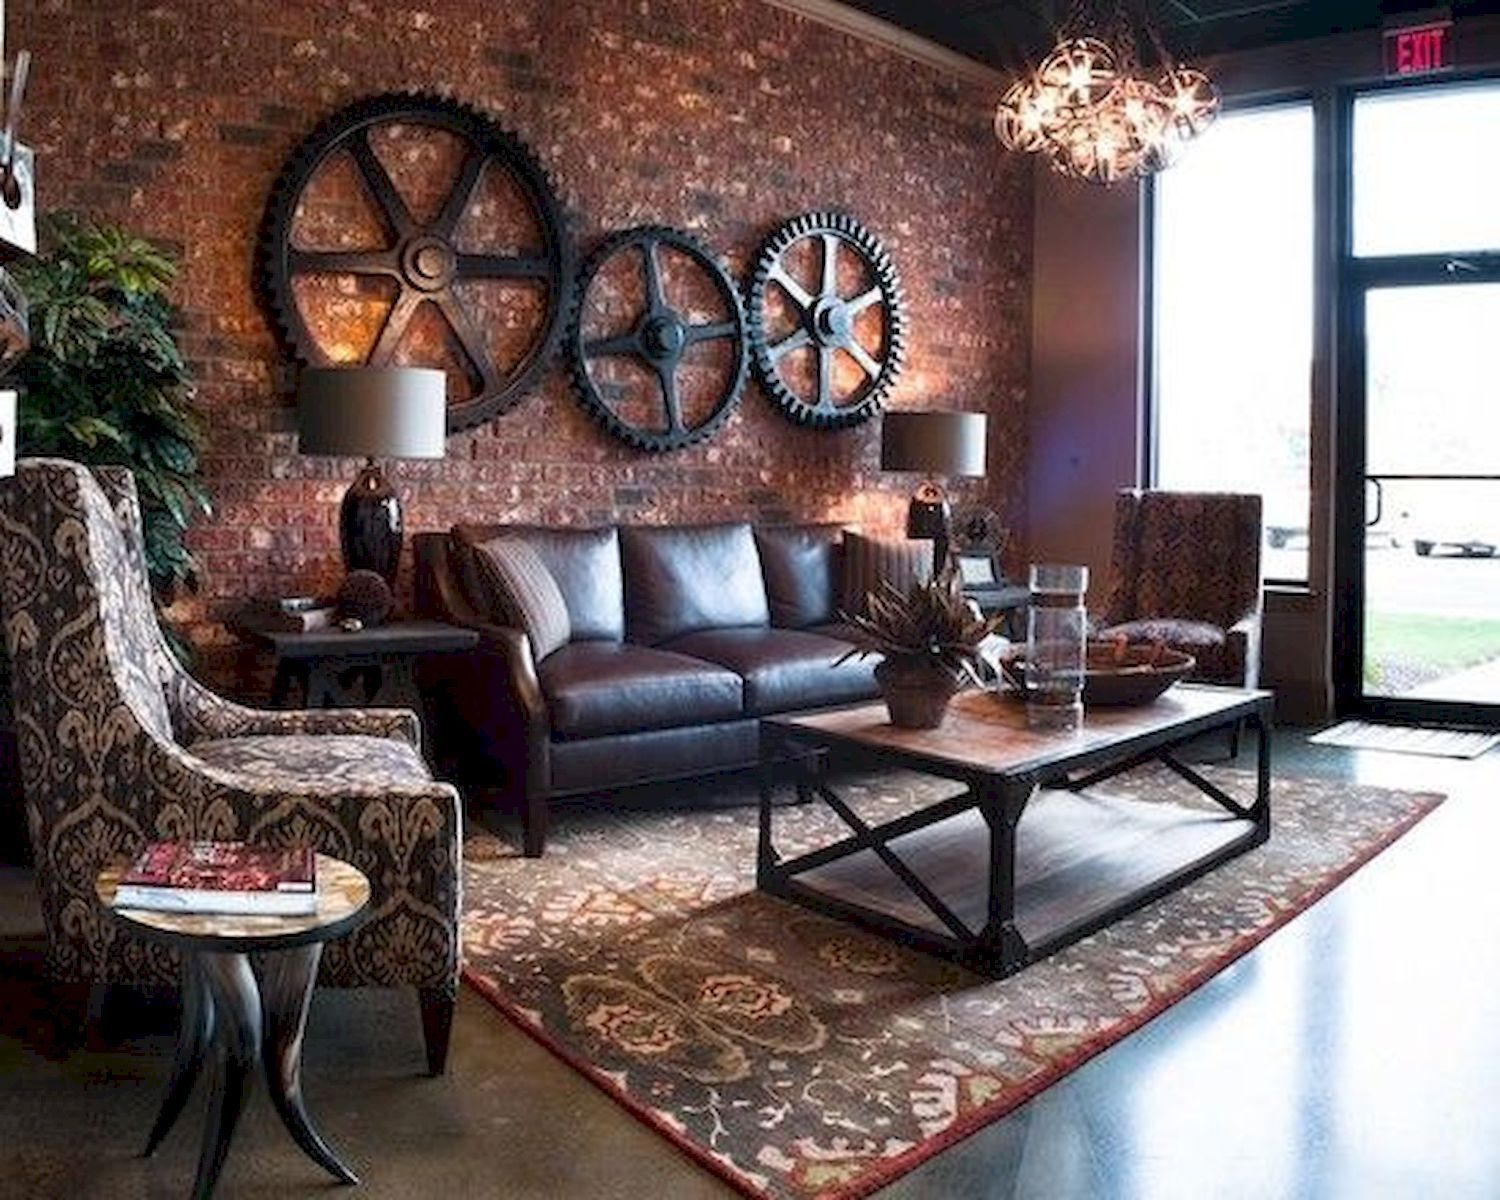 33 Best Industrial Living Room Ideas images